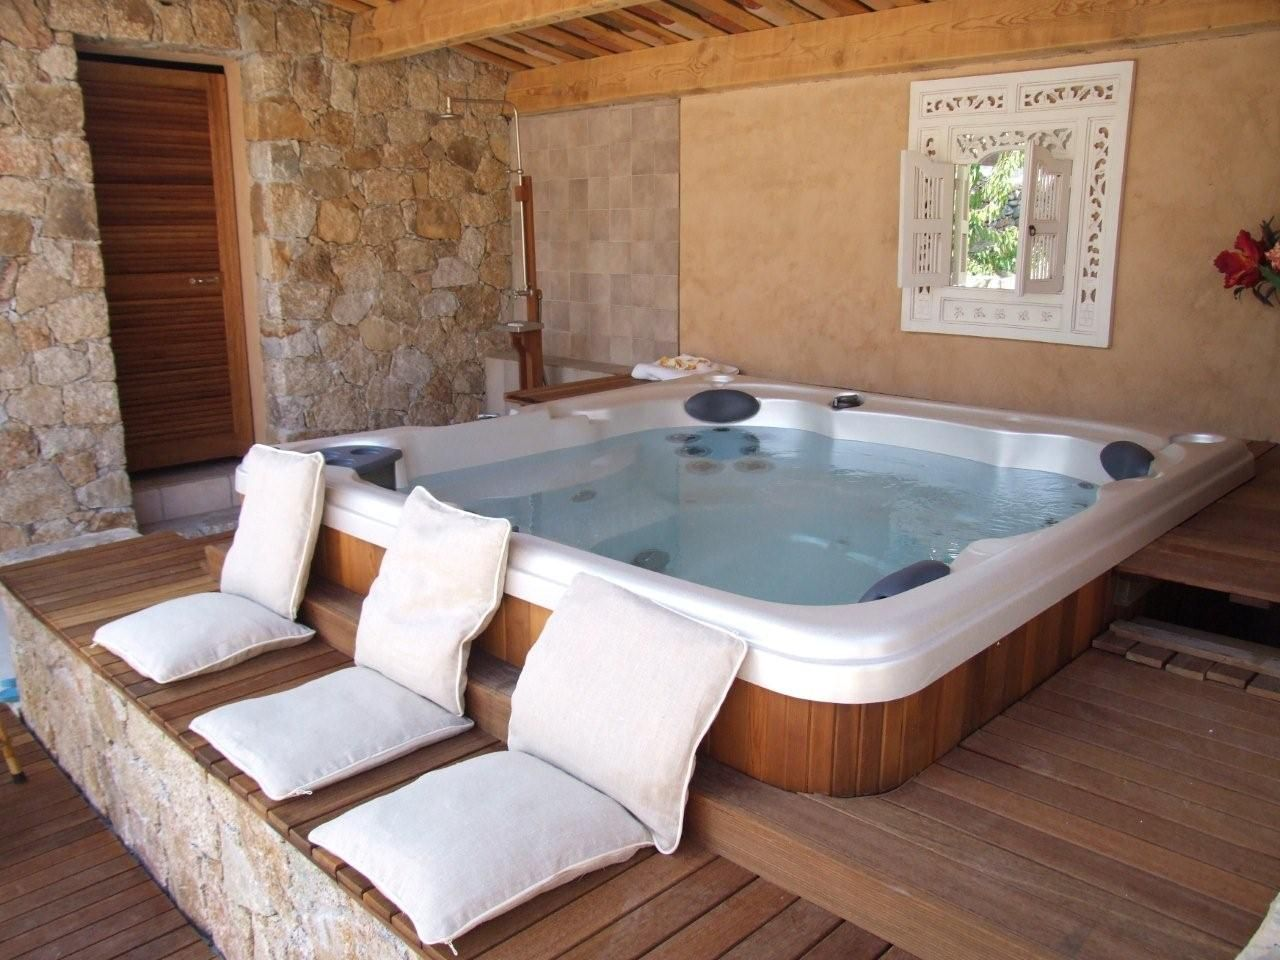 Jacuzzi Tuin Ingraven : Pin by david dangelo on hot tubs spa jacuzzi and bath